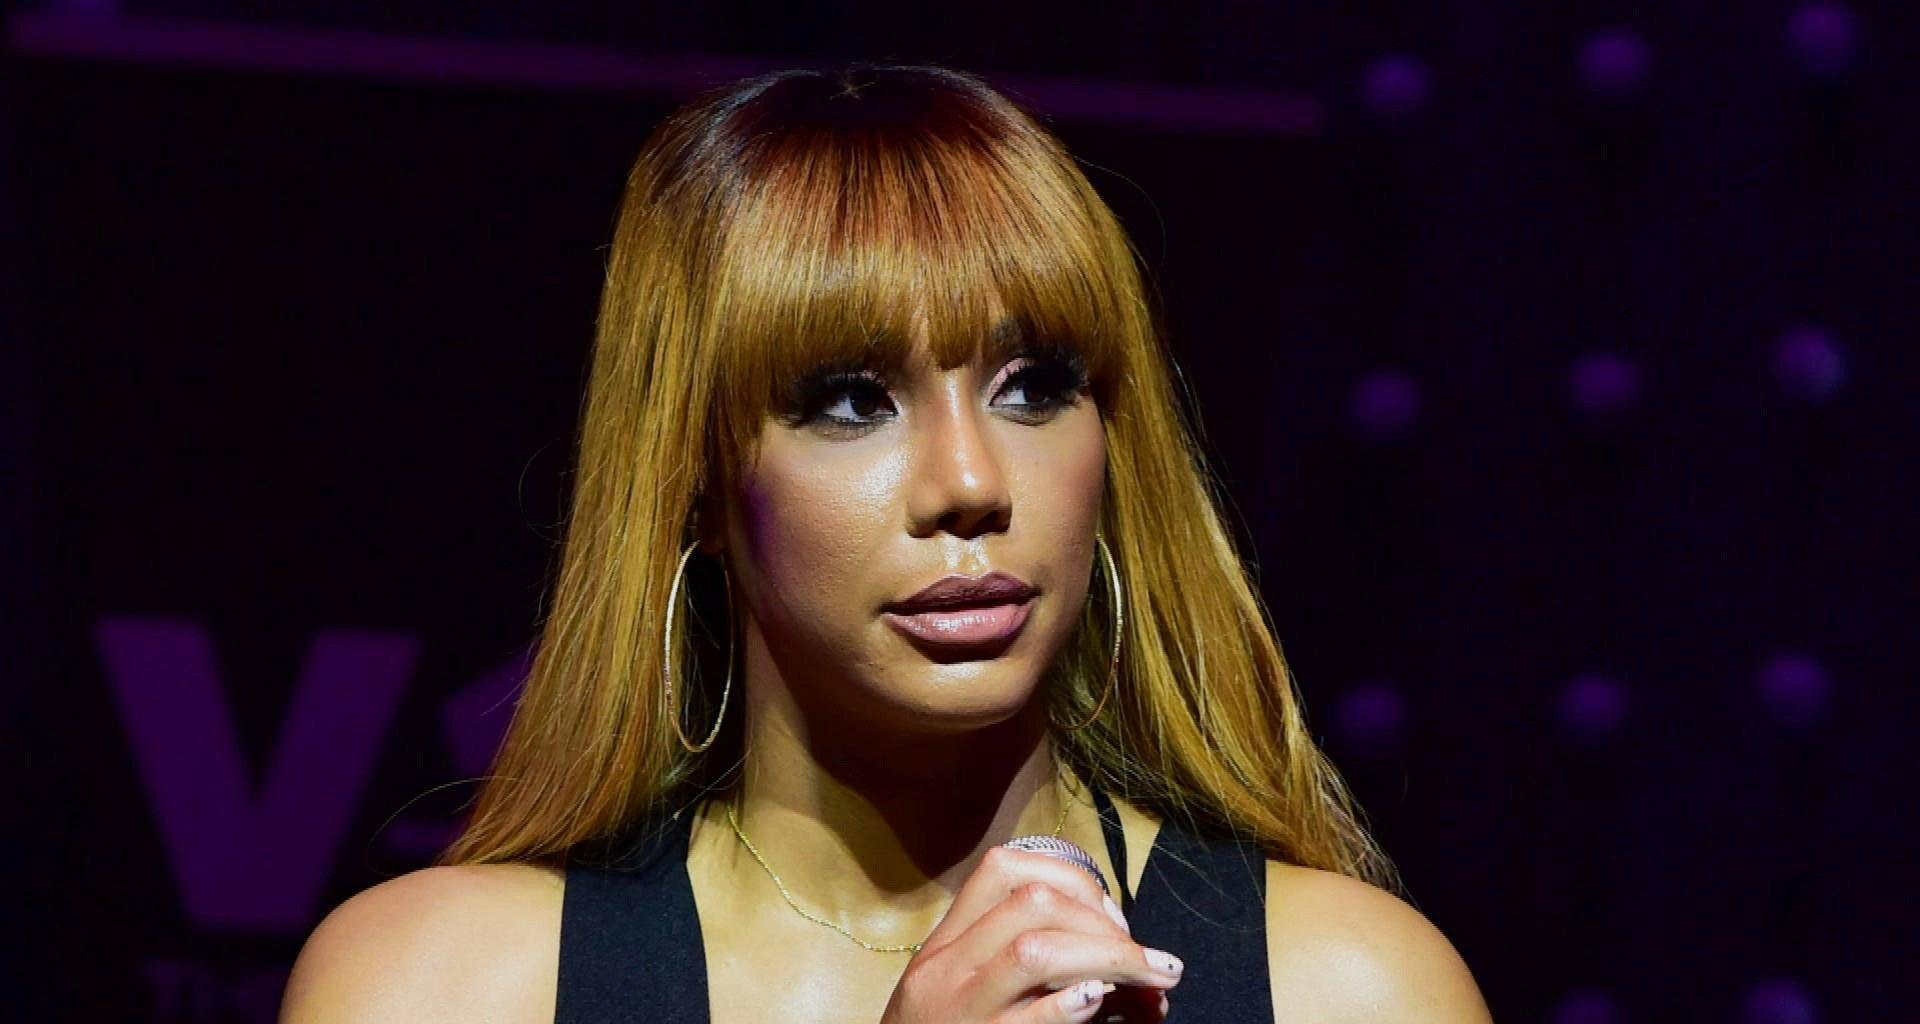 Tamar Braxton Has Fans Excited With This New Podcast - Check it Out Here